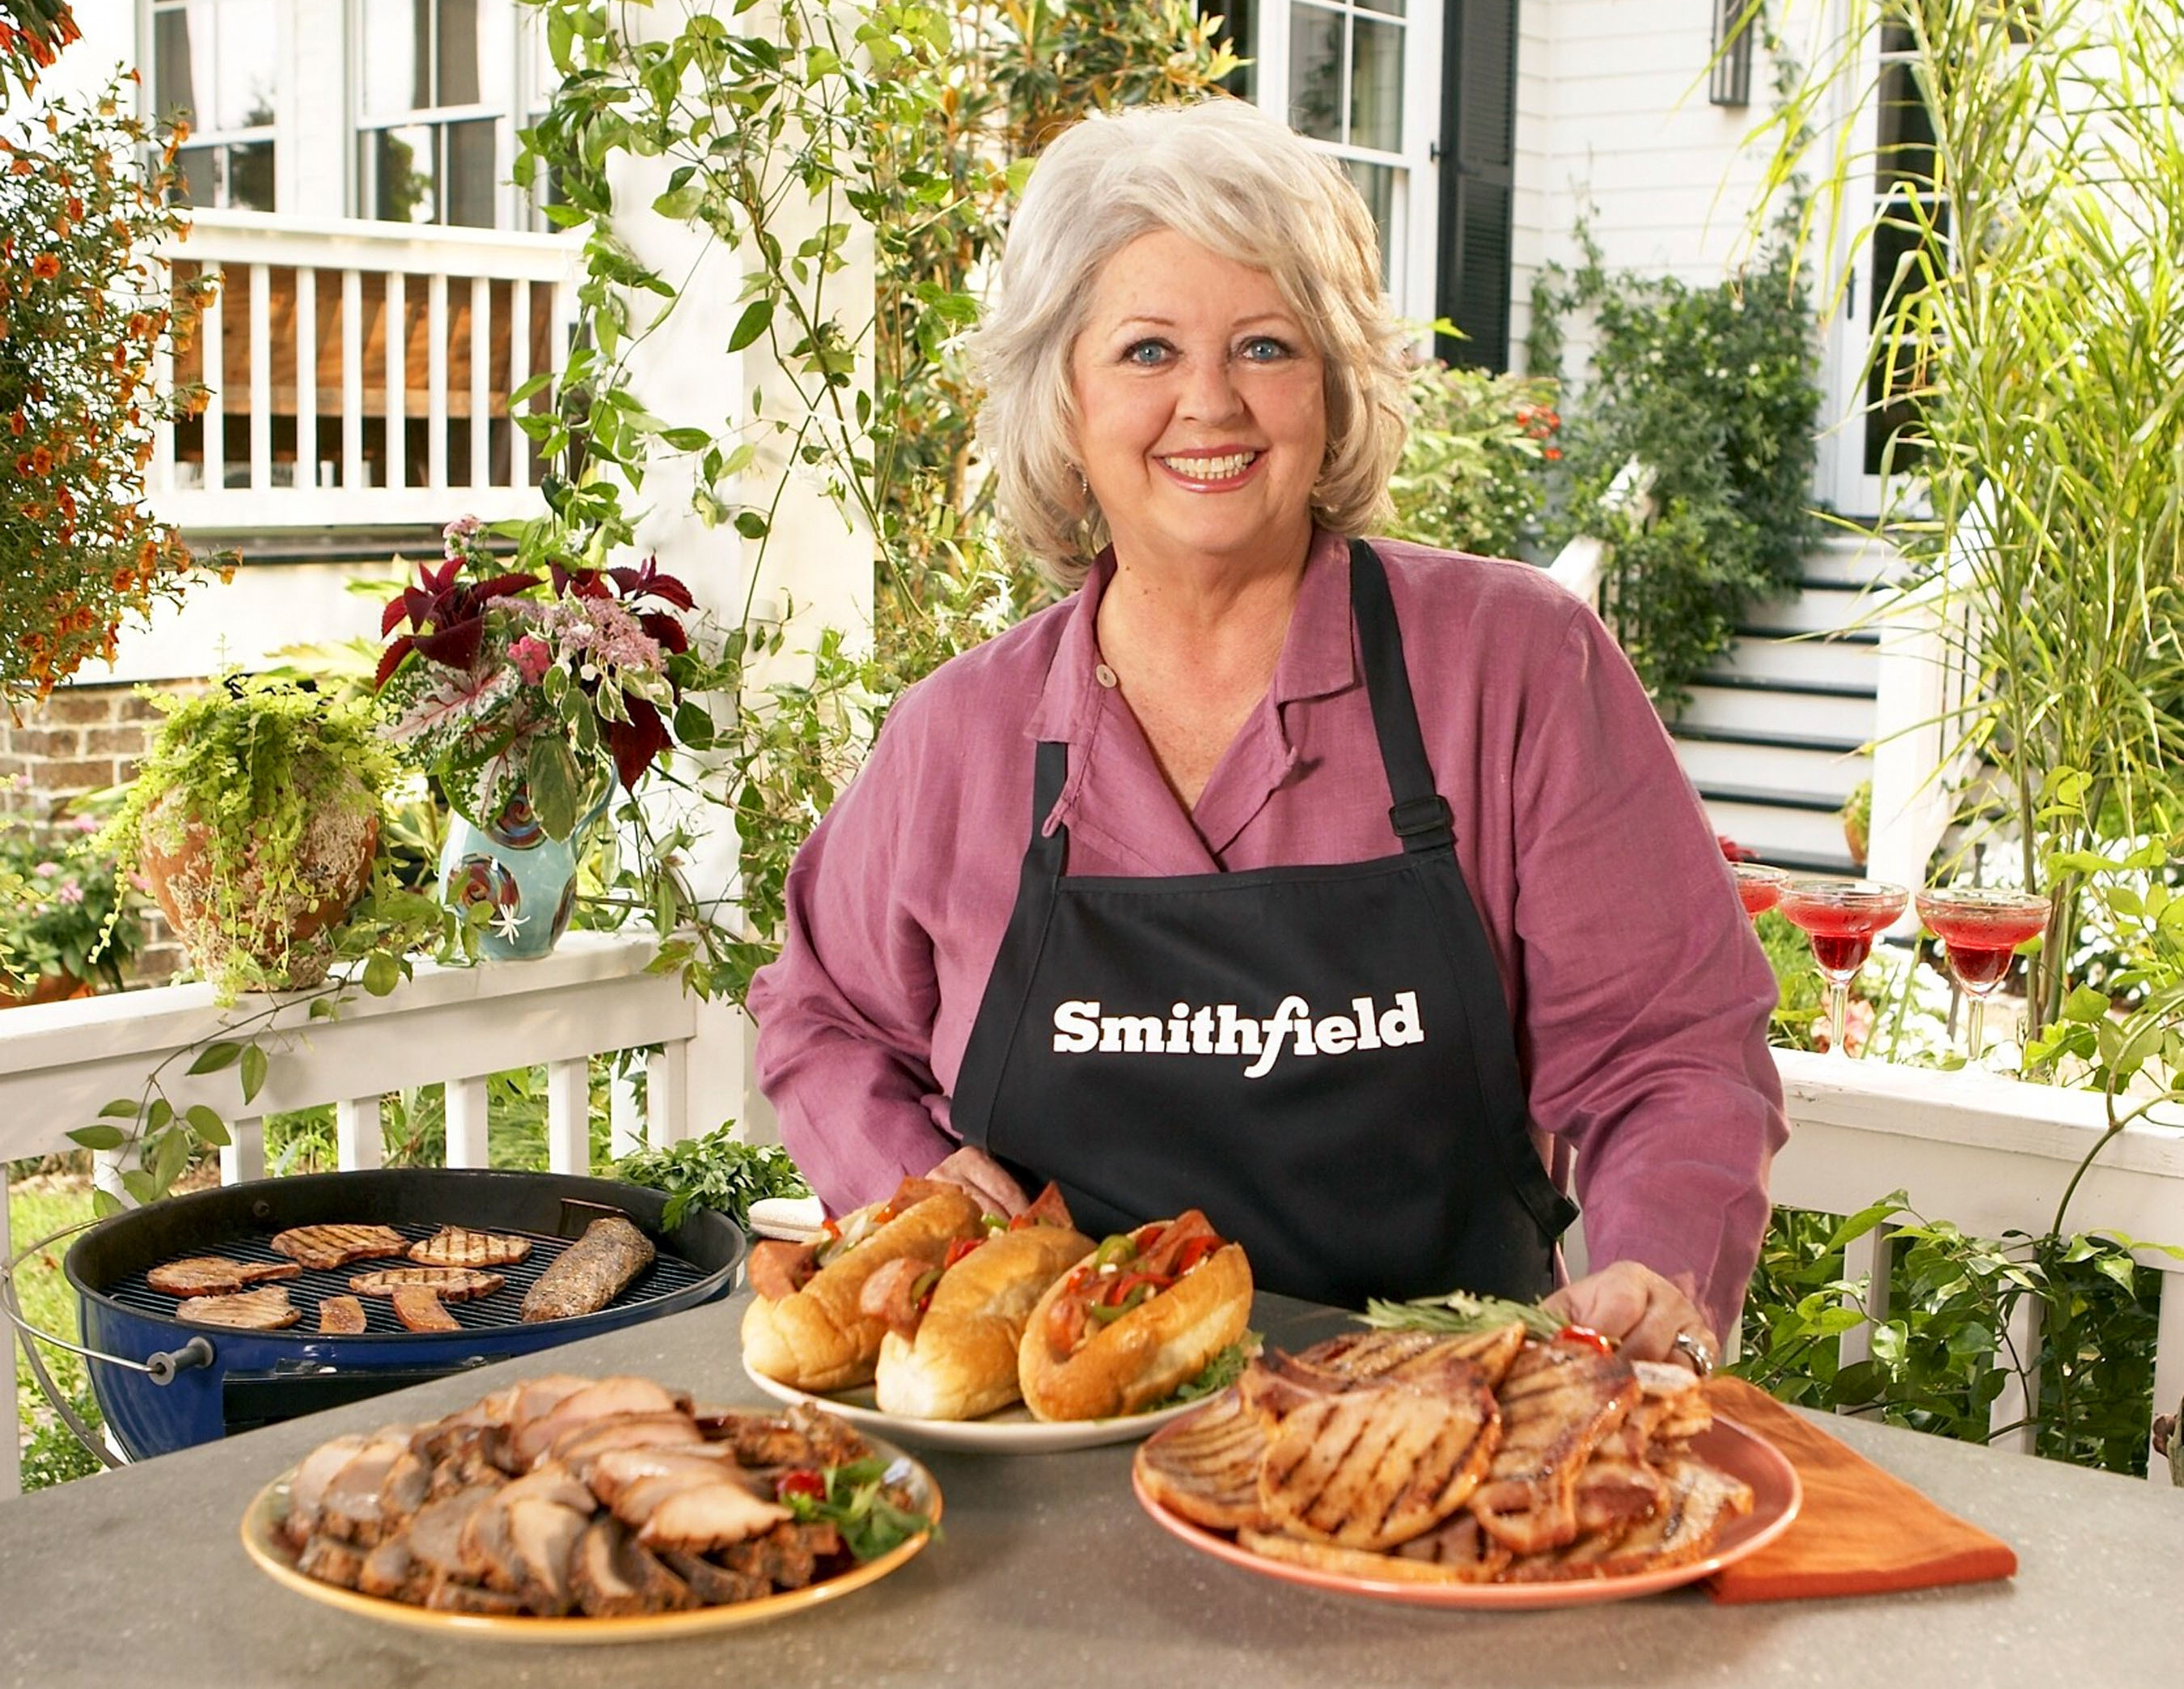 The scandal that has engulfed celebrity chef  Paula Deen also has the potential to impact Nanco Group, which distributes Deen's packaged foods line.